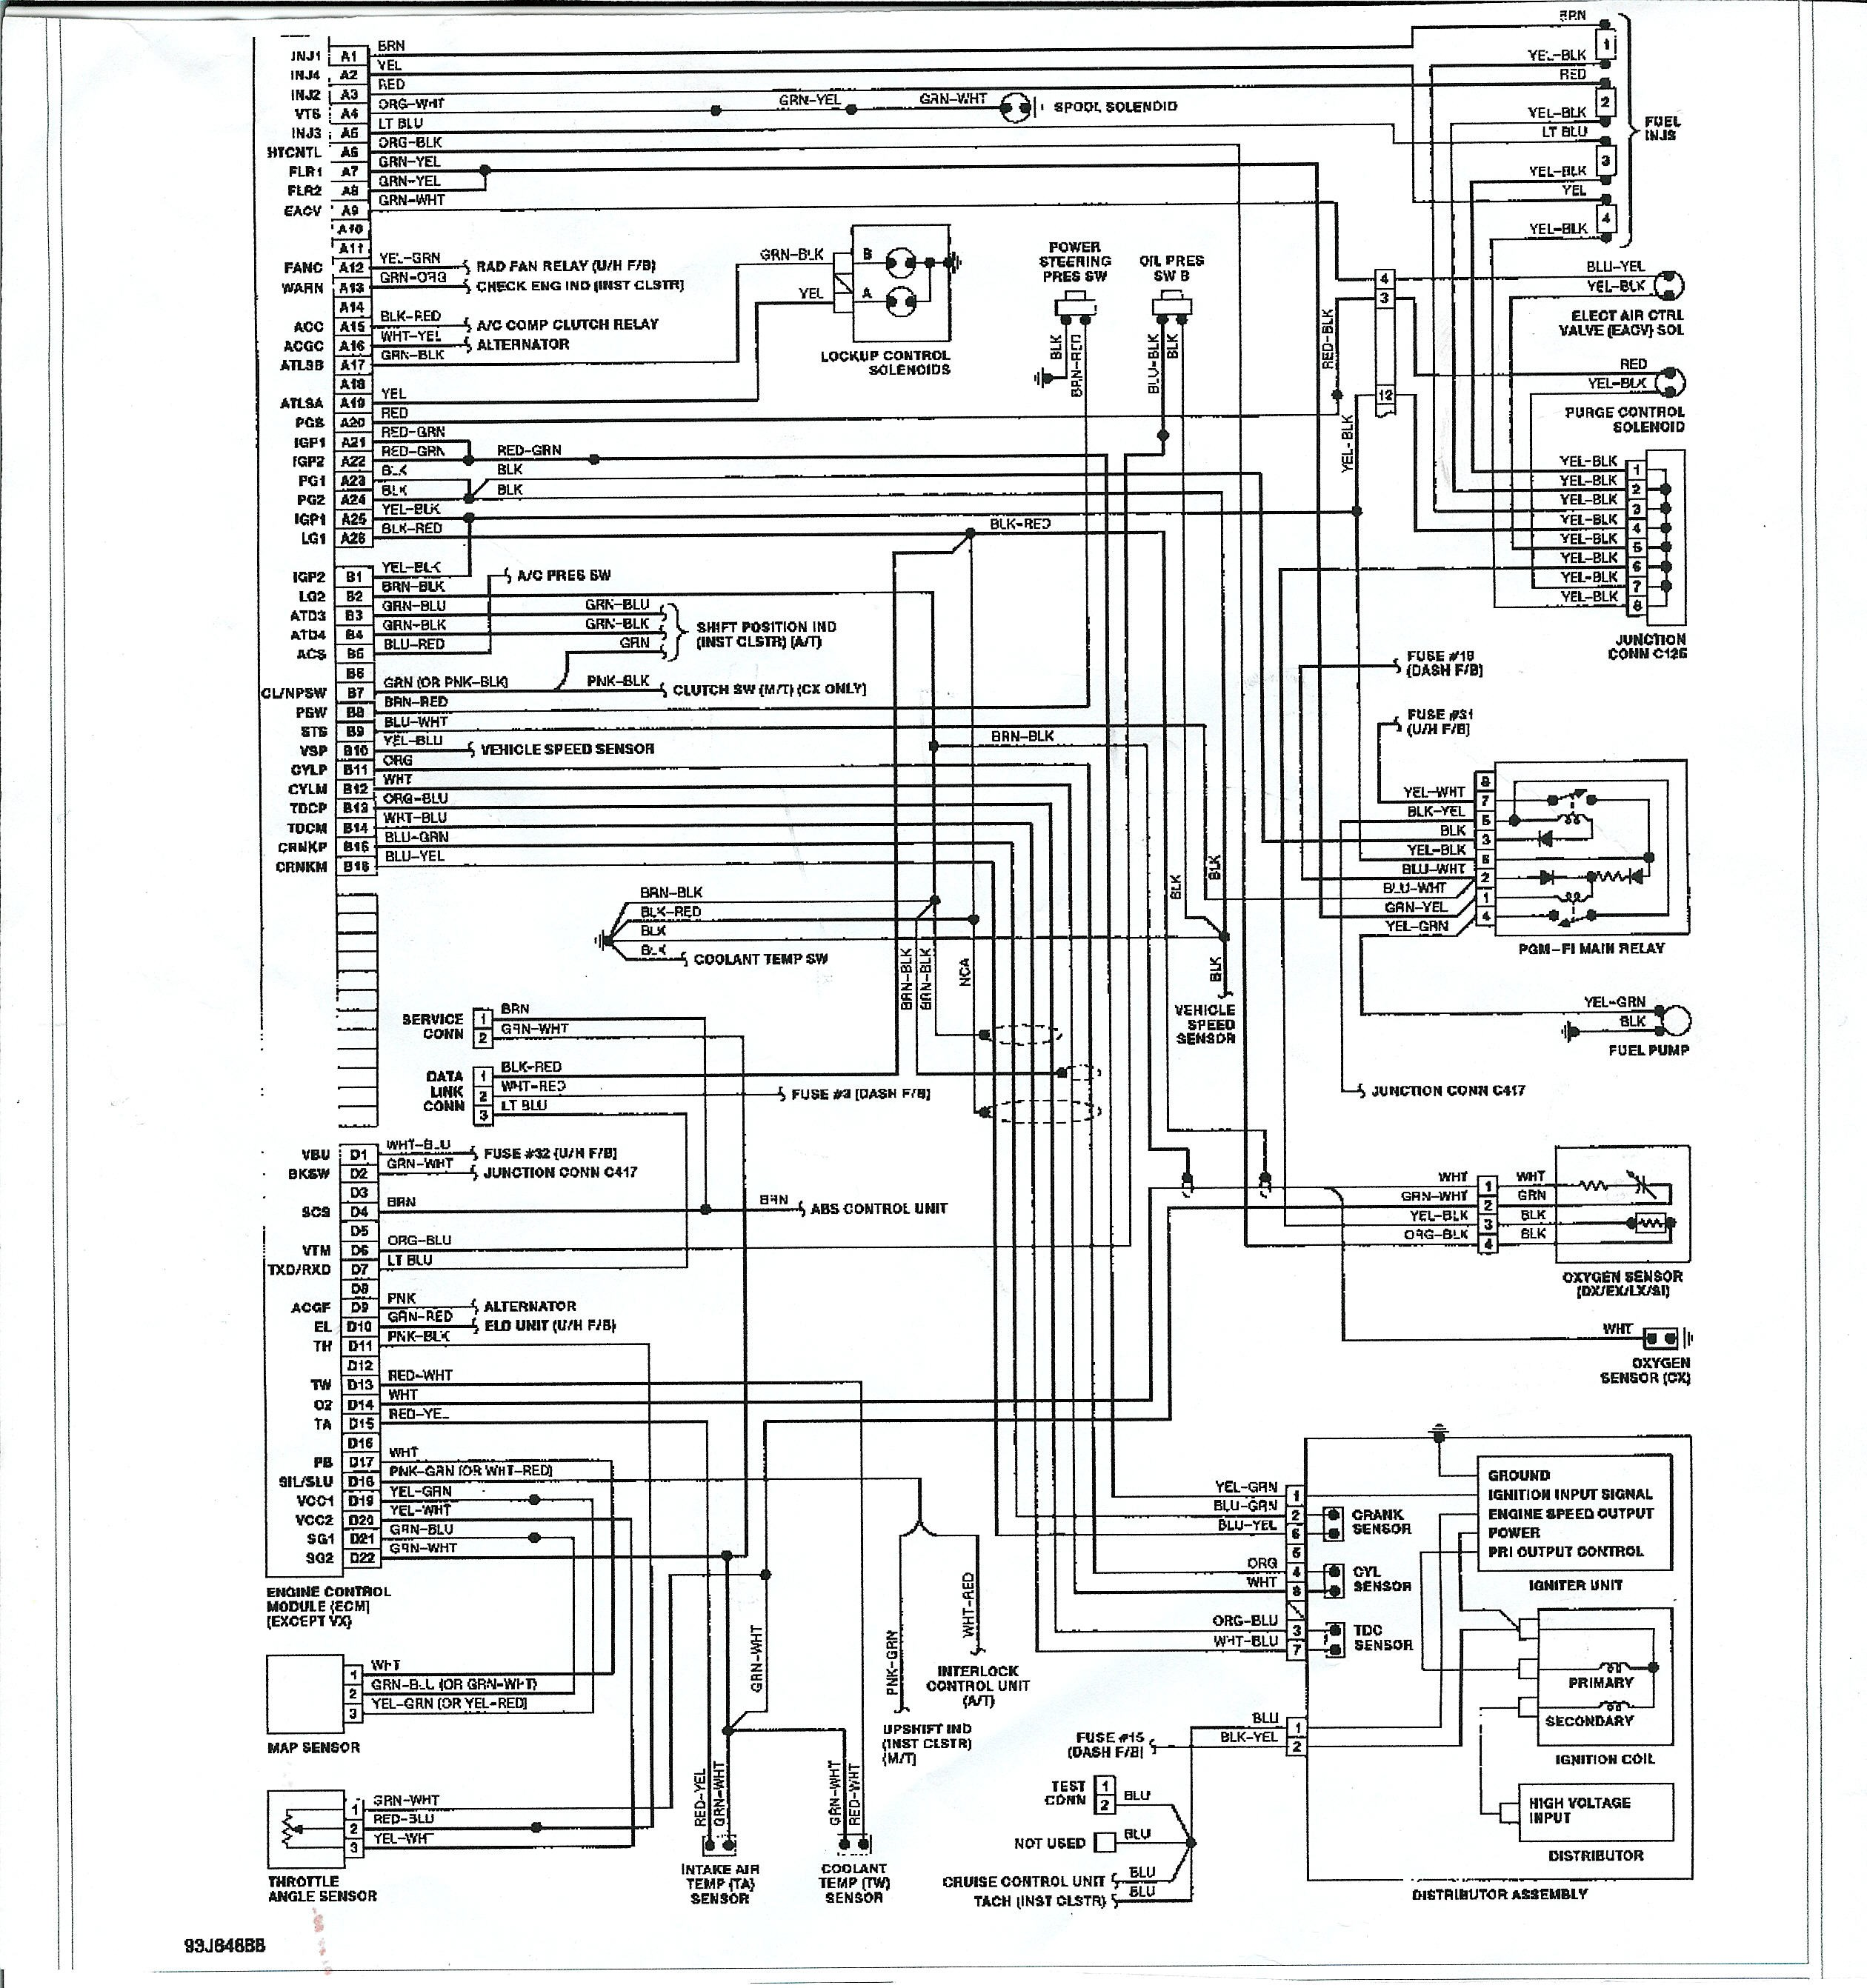 05 altima stereo wiring diagram